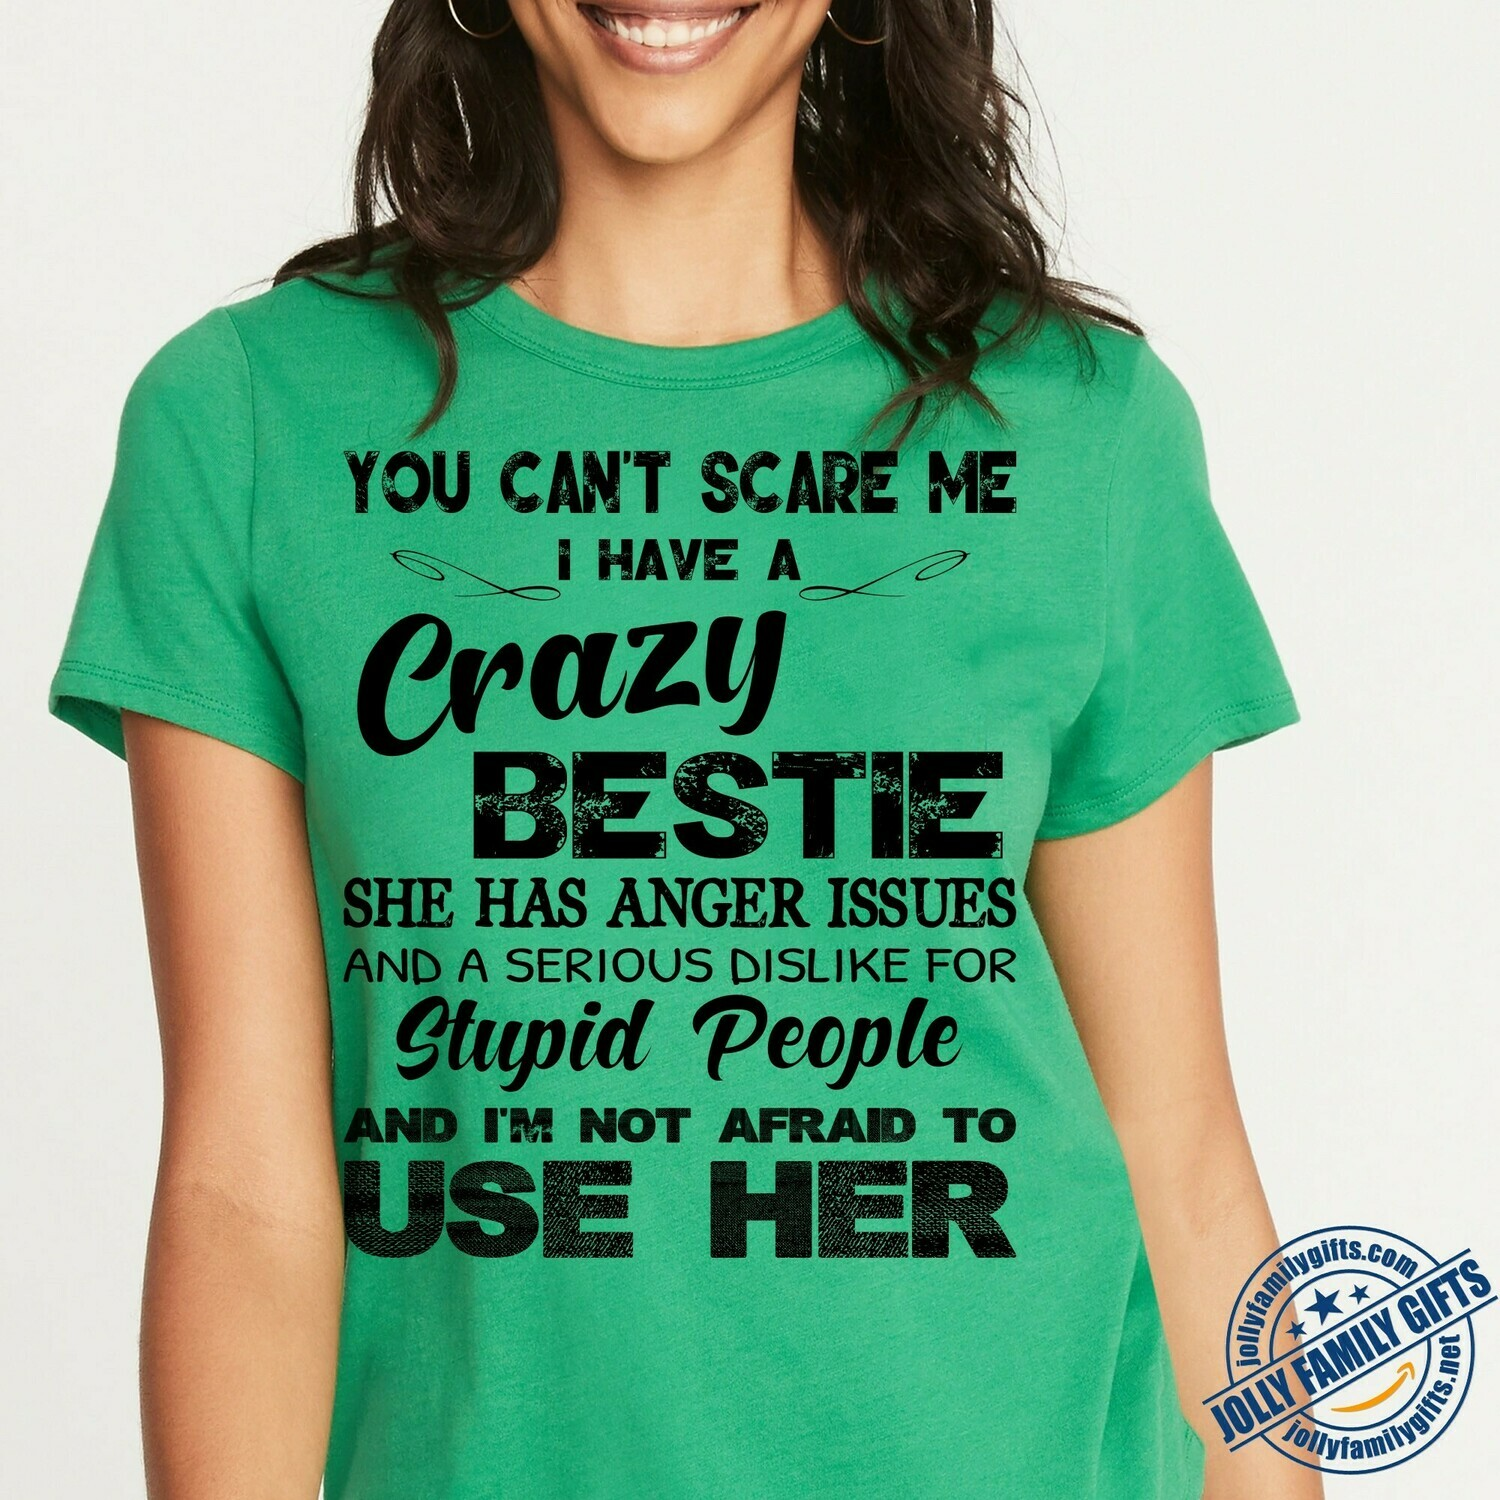 You can't Scare Me I have a Crazy Bestie She has Anger Issues for best friends mom dad Unisex T-Shirt Hoodie Sweatshirt Sweater Plus Size for Ladies Women Men Kids Youth Gifts Tee Jolly Family Gifts